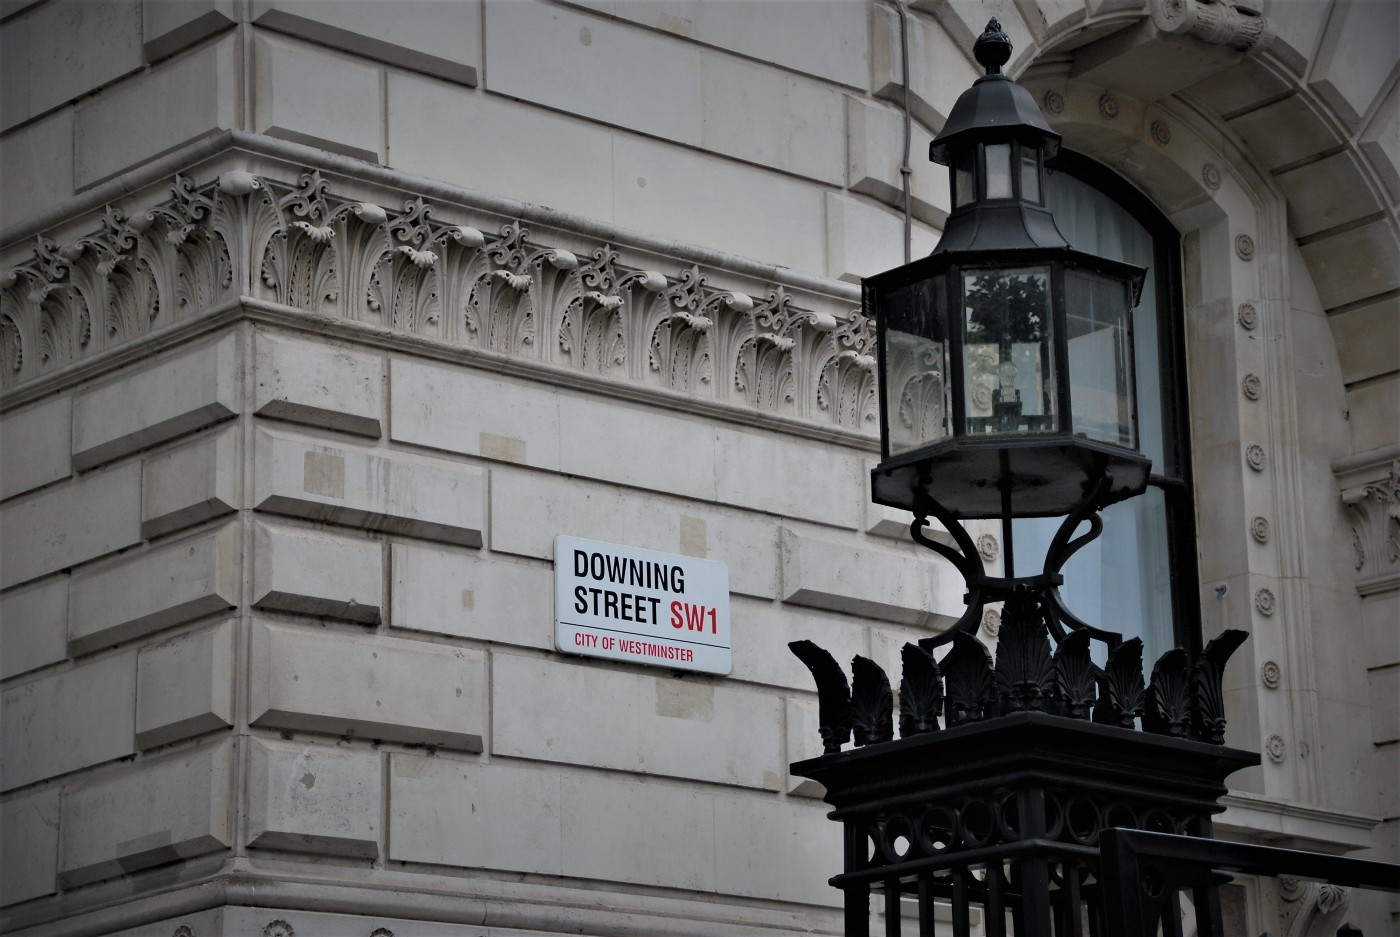 Close up of the Downing Street plate corner.